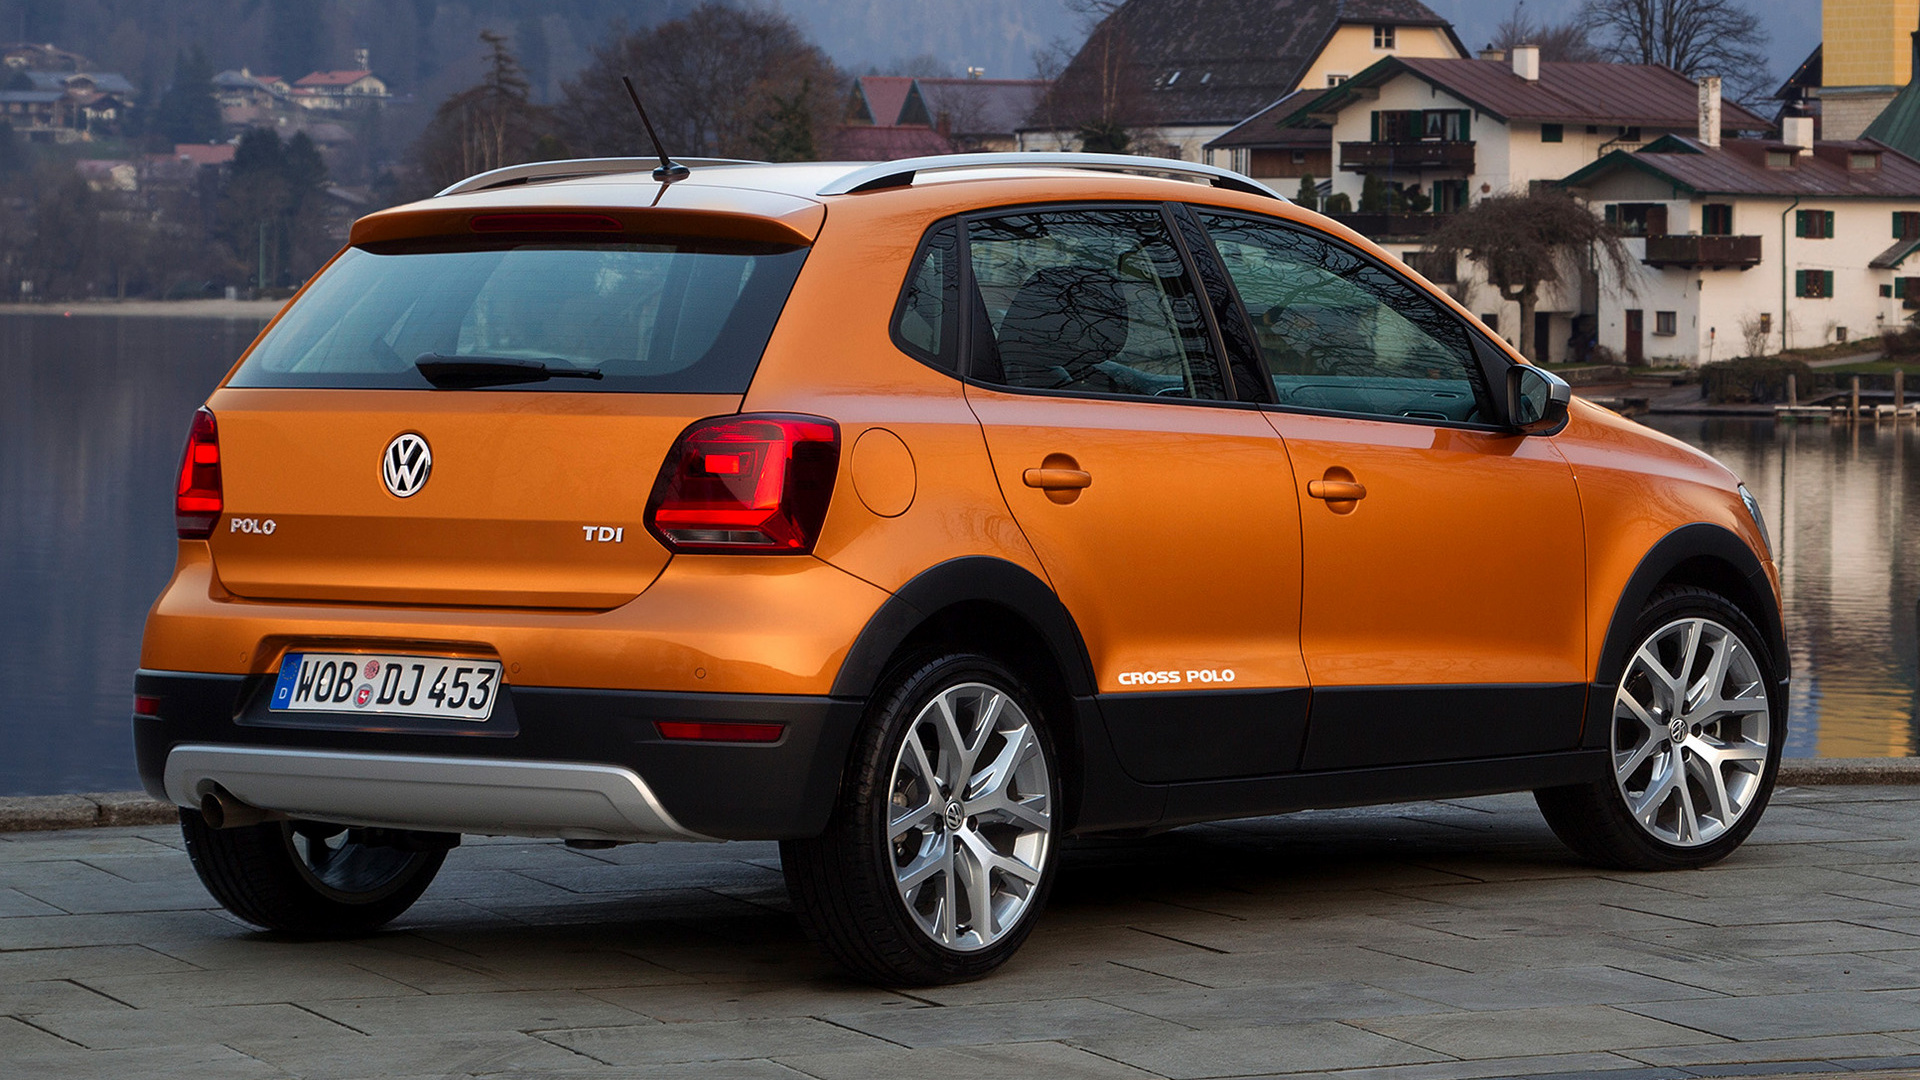 volkswagen cross polo 2014 wallpapers and hd images. Black Bedroom Furniture Sets. Home Design Ideas